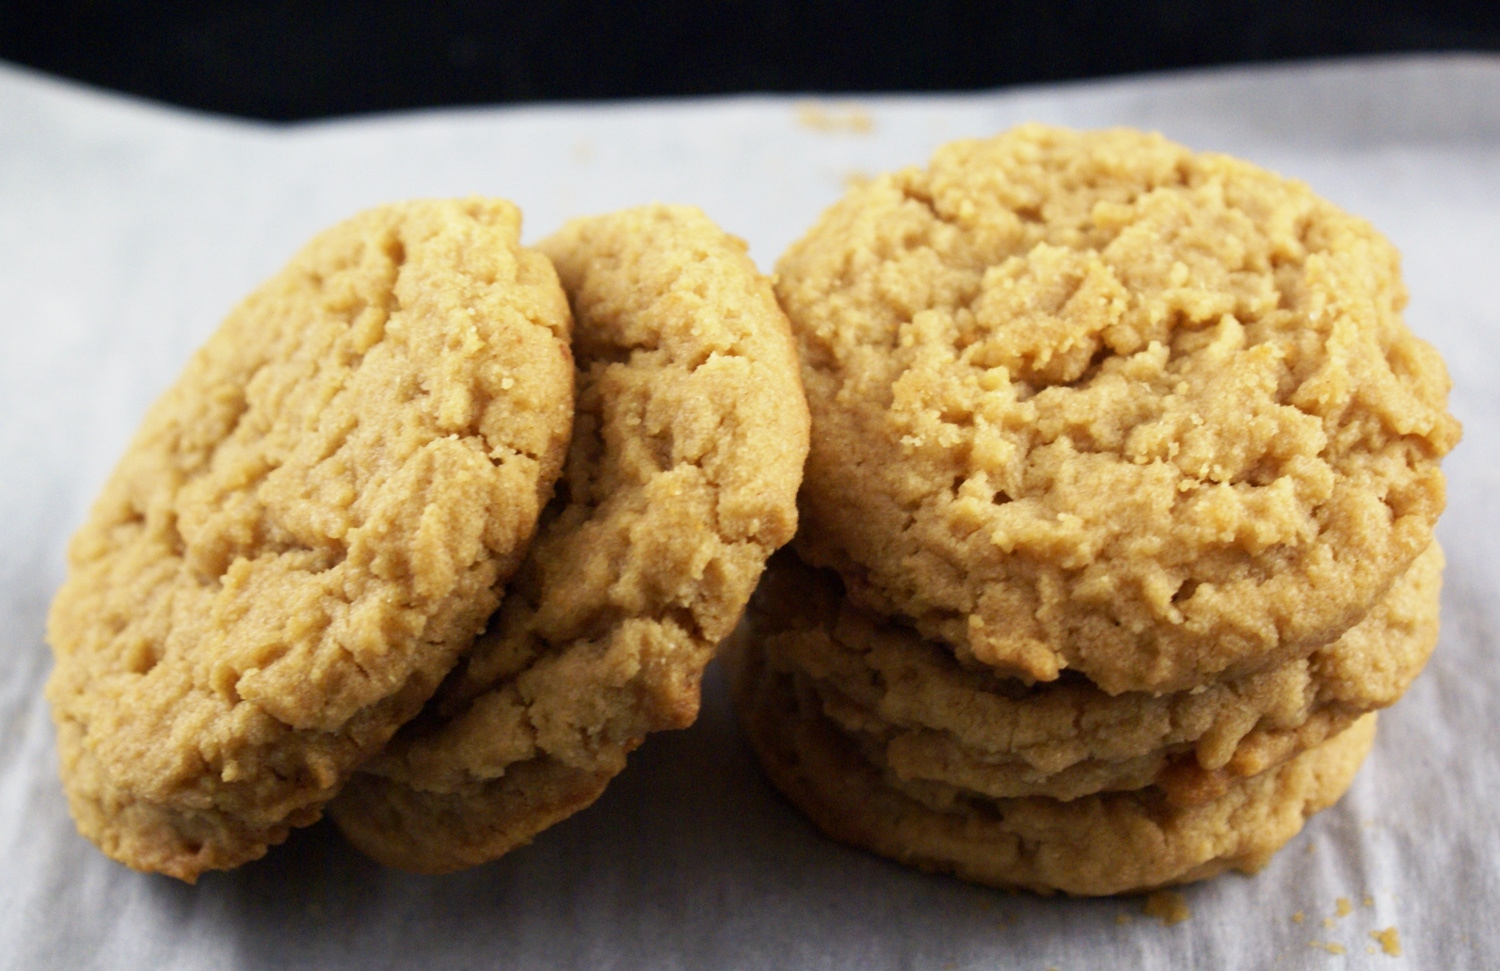 Mrs. Field's Soft and Chewy Peanut Butter Cookies Recipe